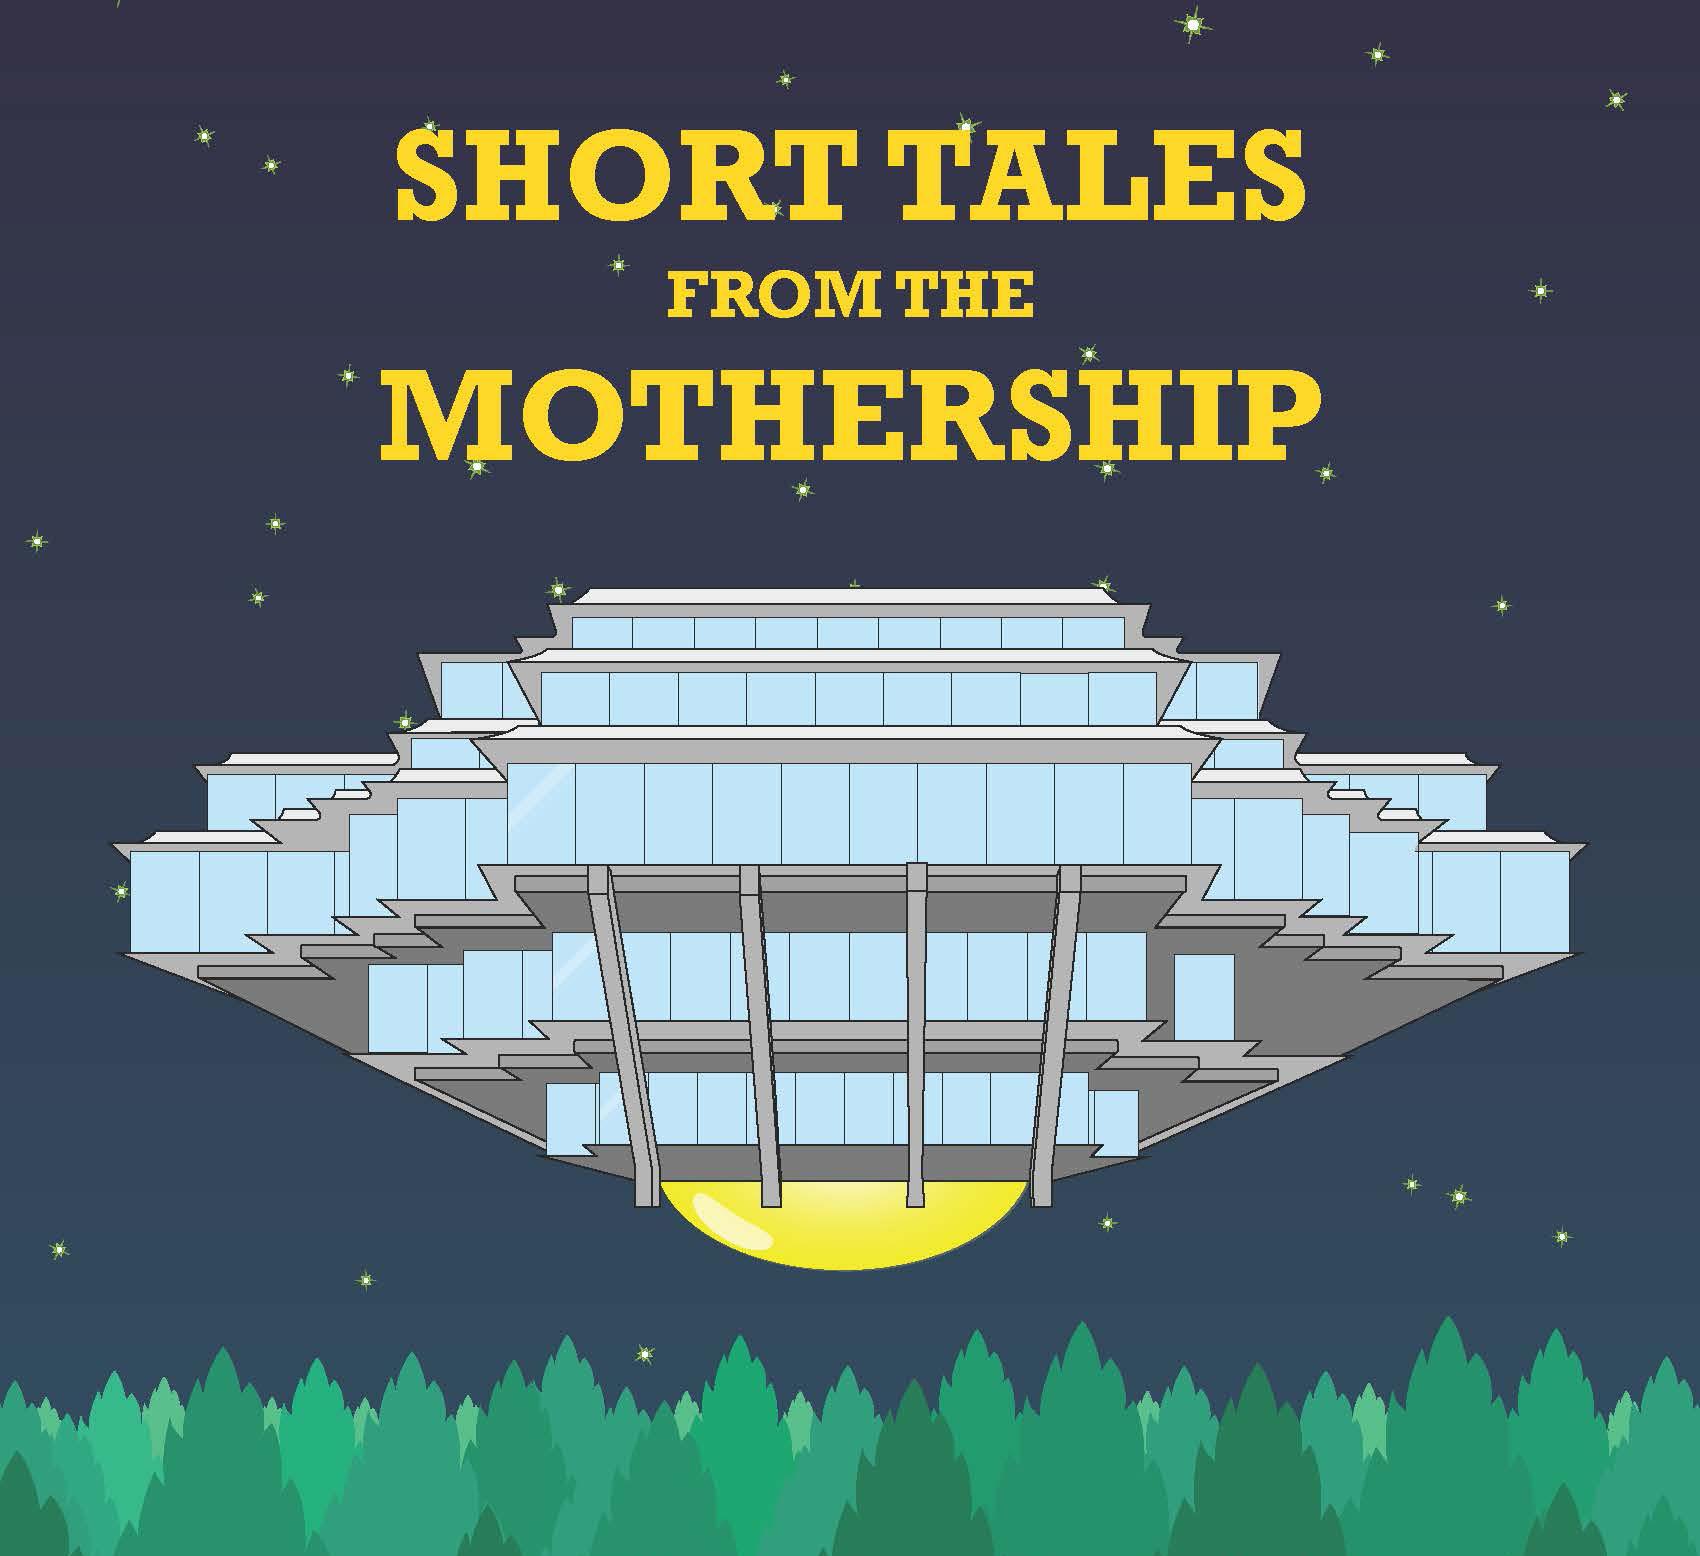 tales_from_the_mothership_rd-cropped